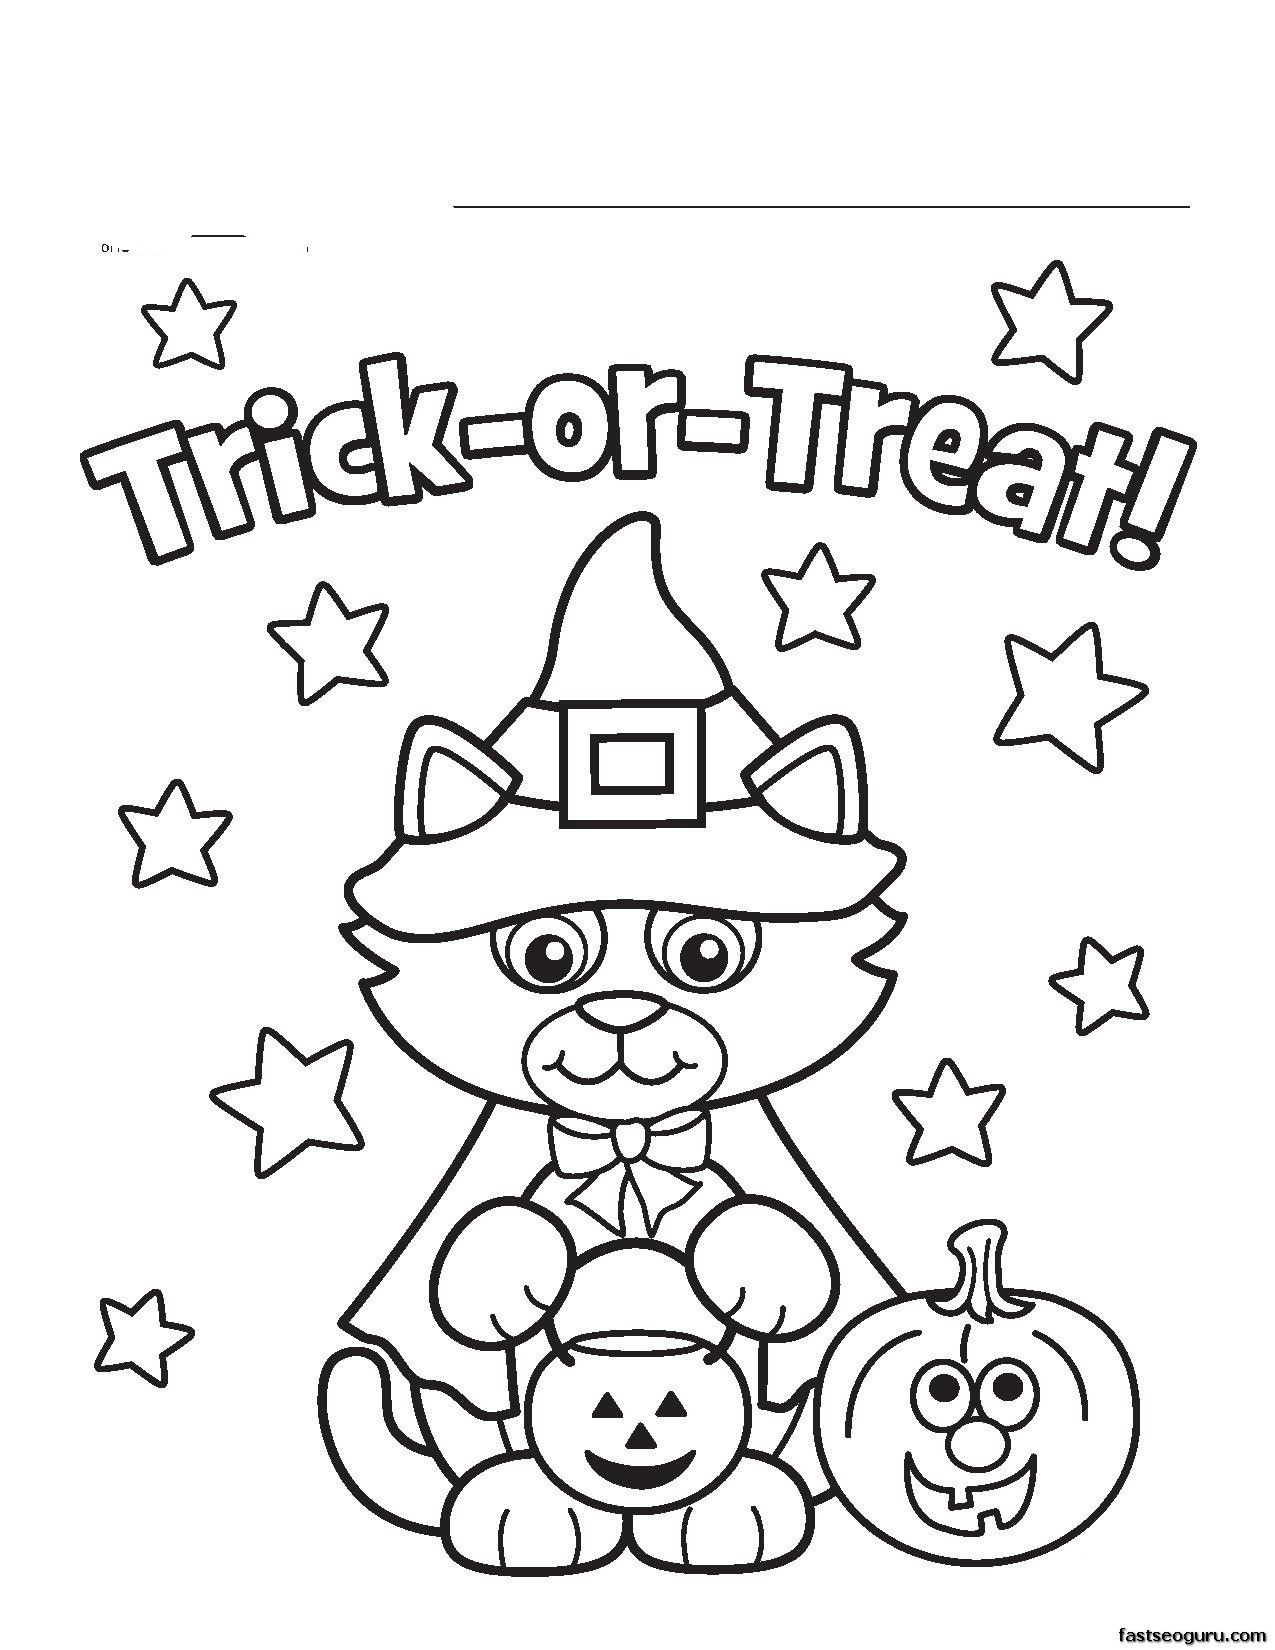 Coloring Pages Free Halloween Coloring Page free happy halloween coloring pages az page printable in ucwords halloween